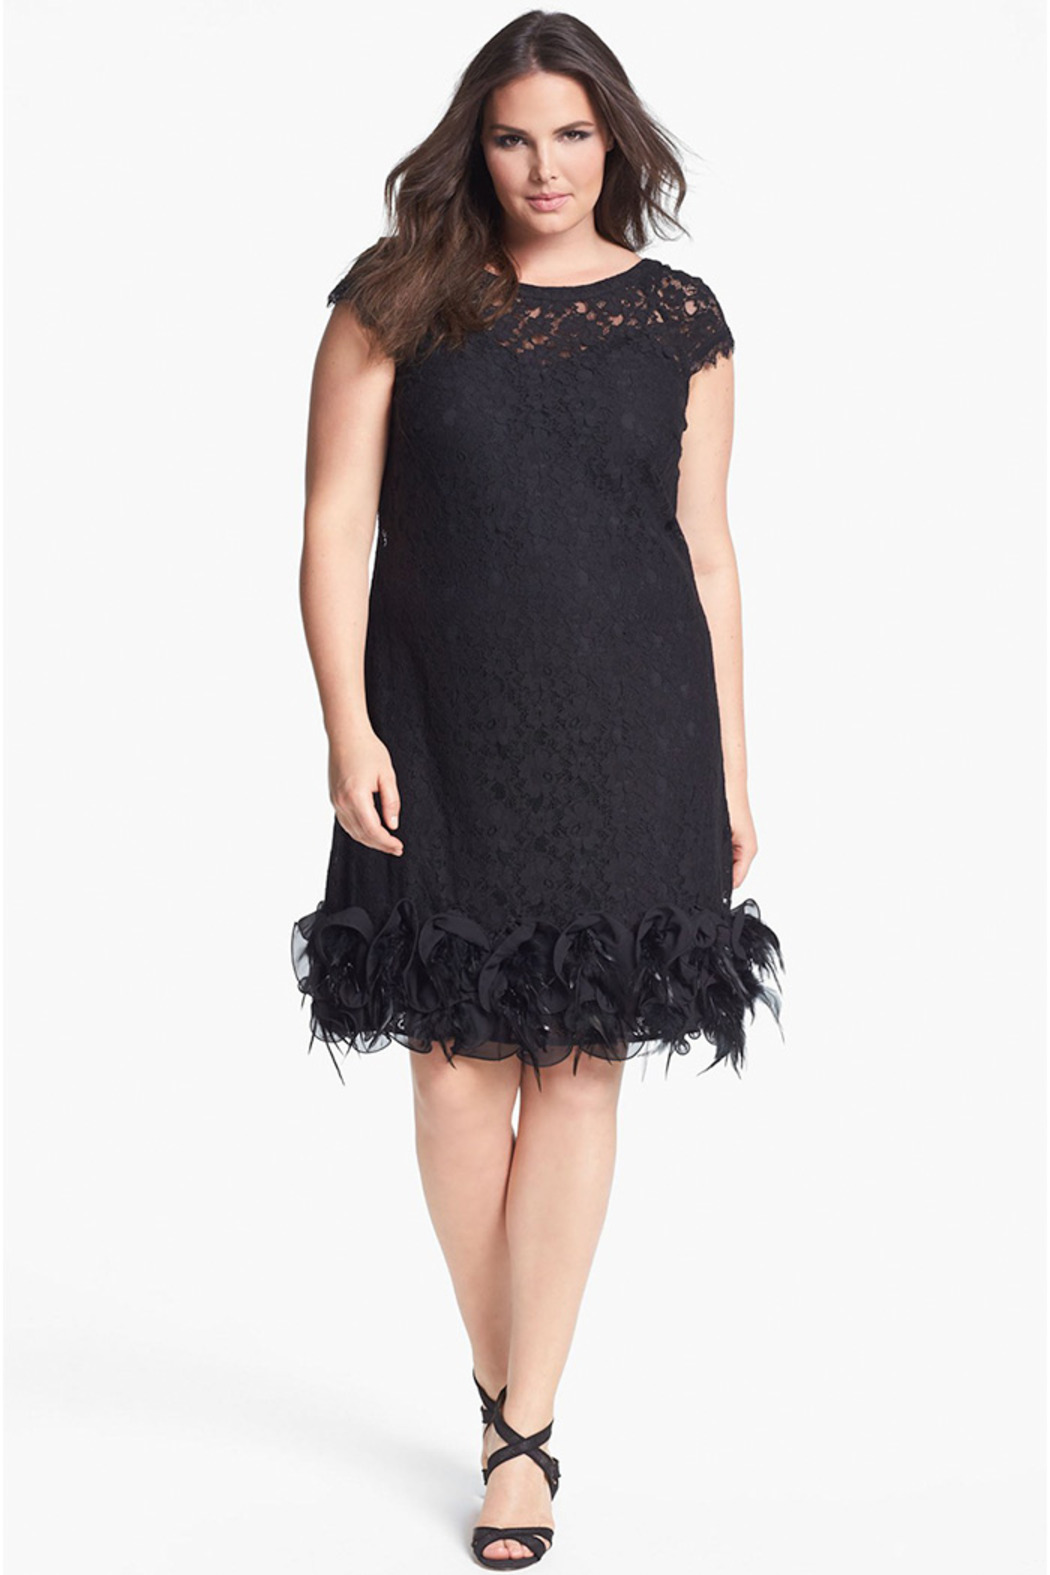 Jessica Simpson Flapper Dress From Lower East Side By